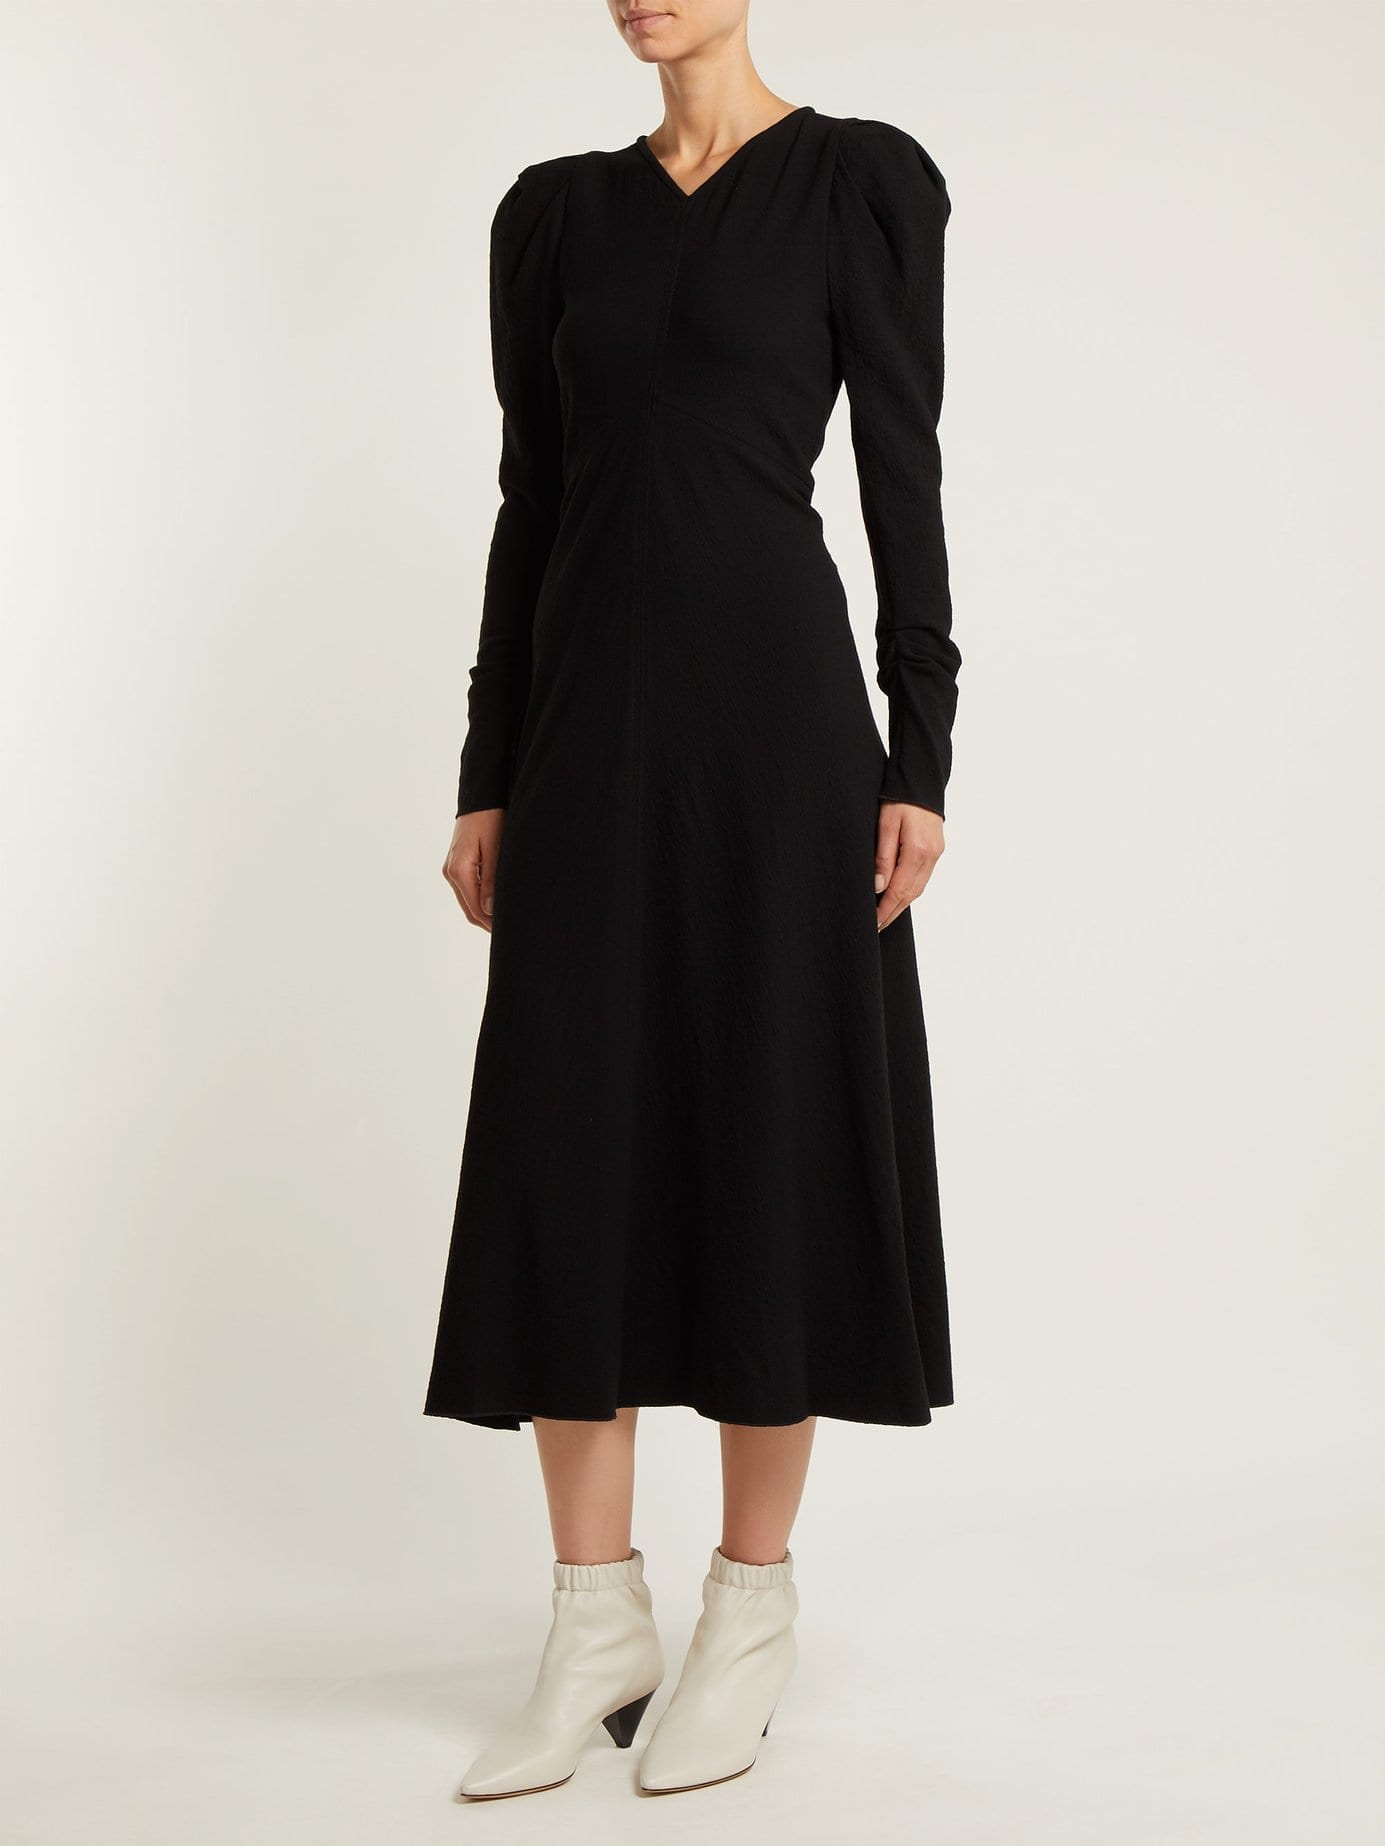 ISABEL MARANT Abi Gathered Crepe Black Dress